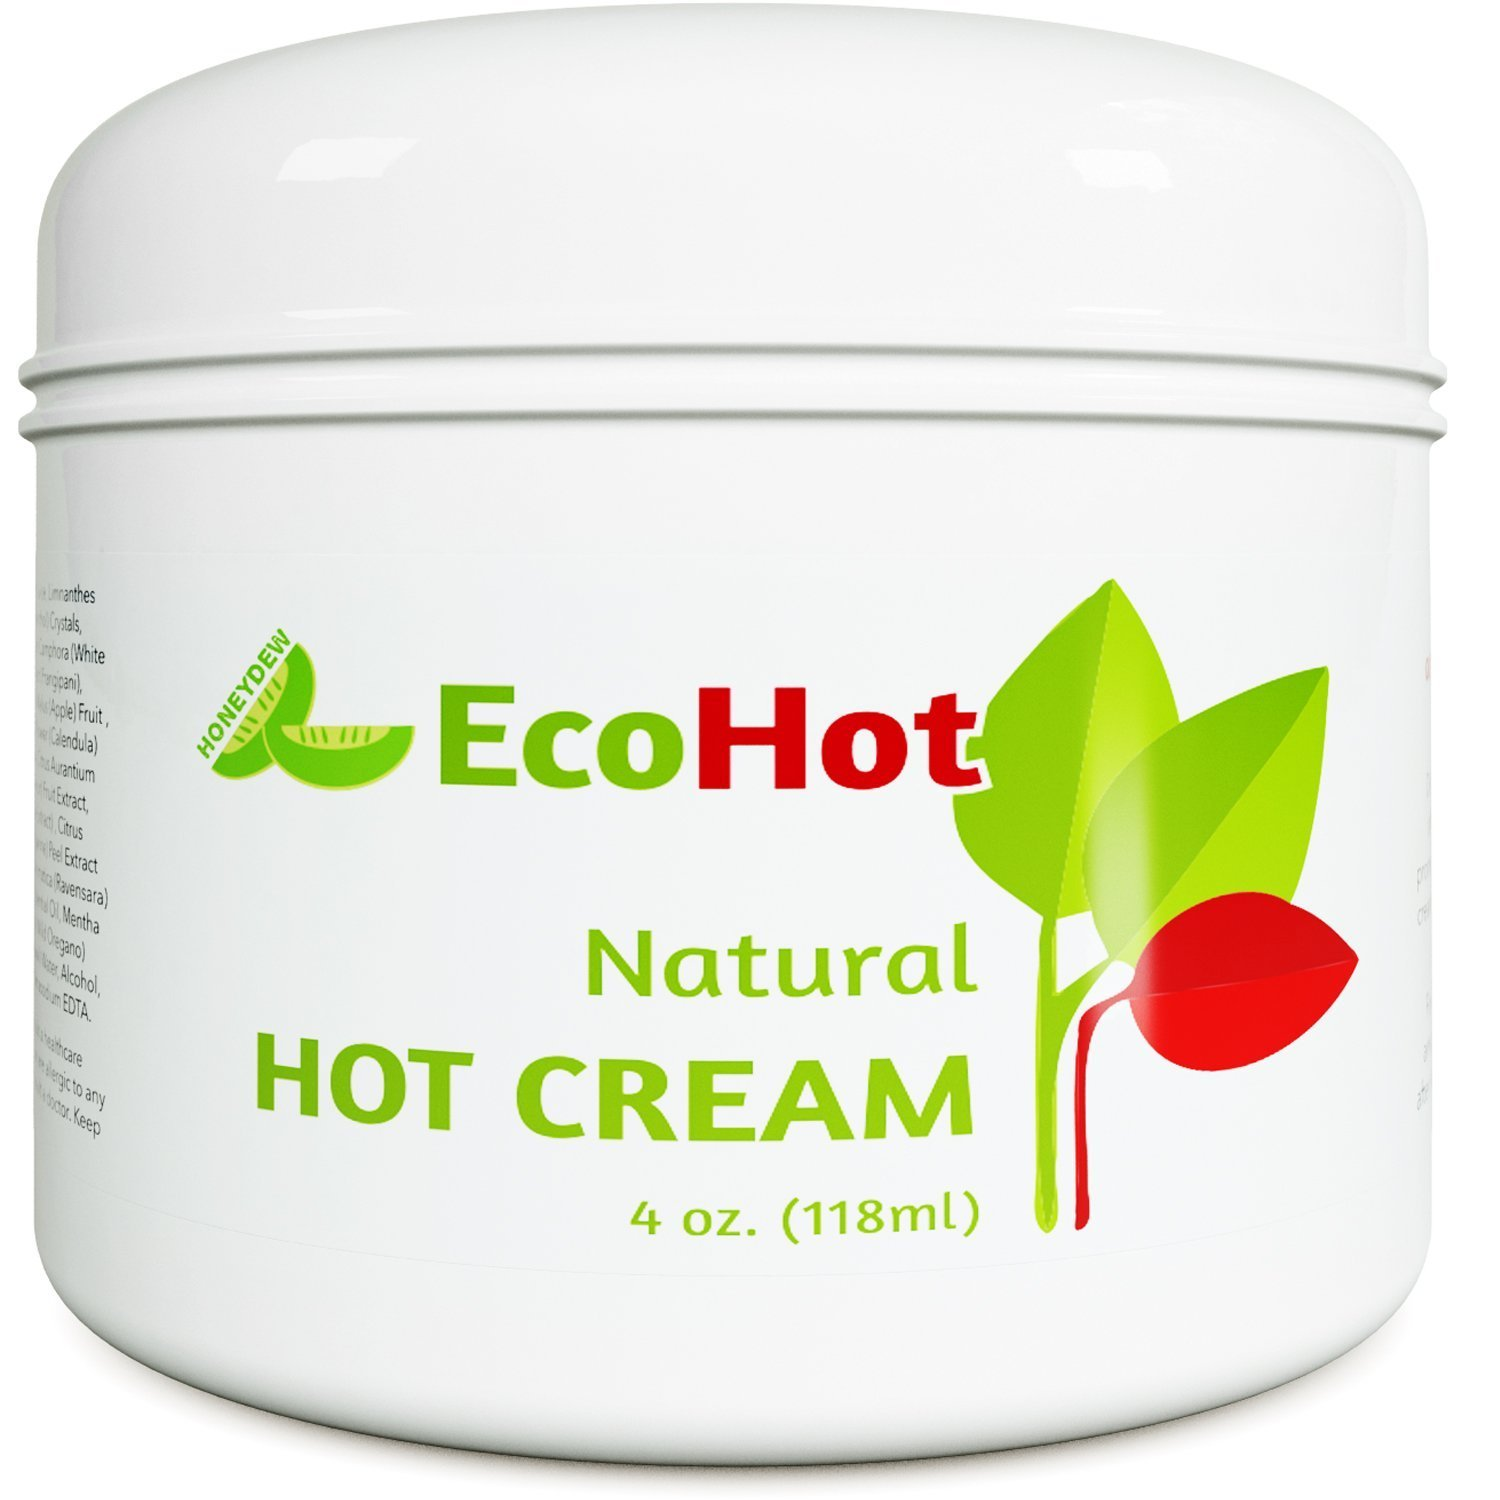 Natural Skin Tightening Cream - Anti Aging Body Treatment for Women + Men - Anti Cellulite Stretchmark + Scar Remover - Muscle Pain Relief - Antioxidant Hot Cream Gel Moisturizer For Dry + Saggy Skin by Honeydew